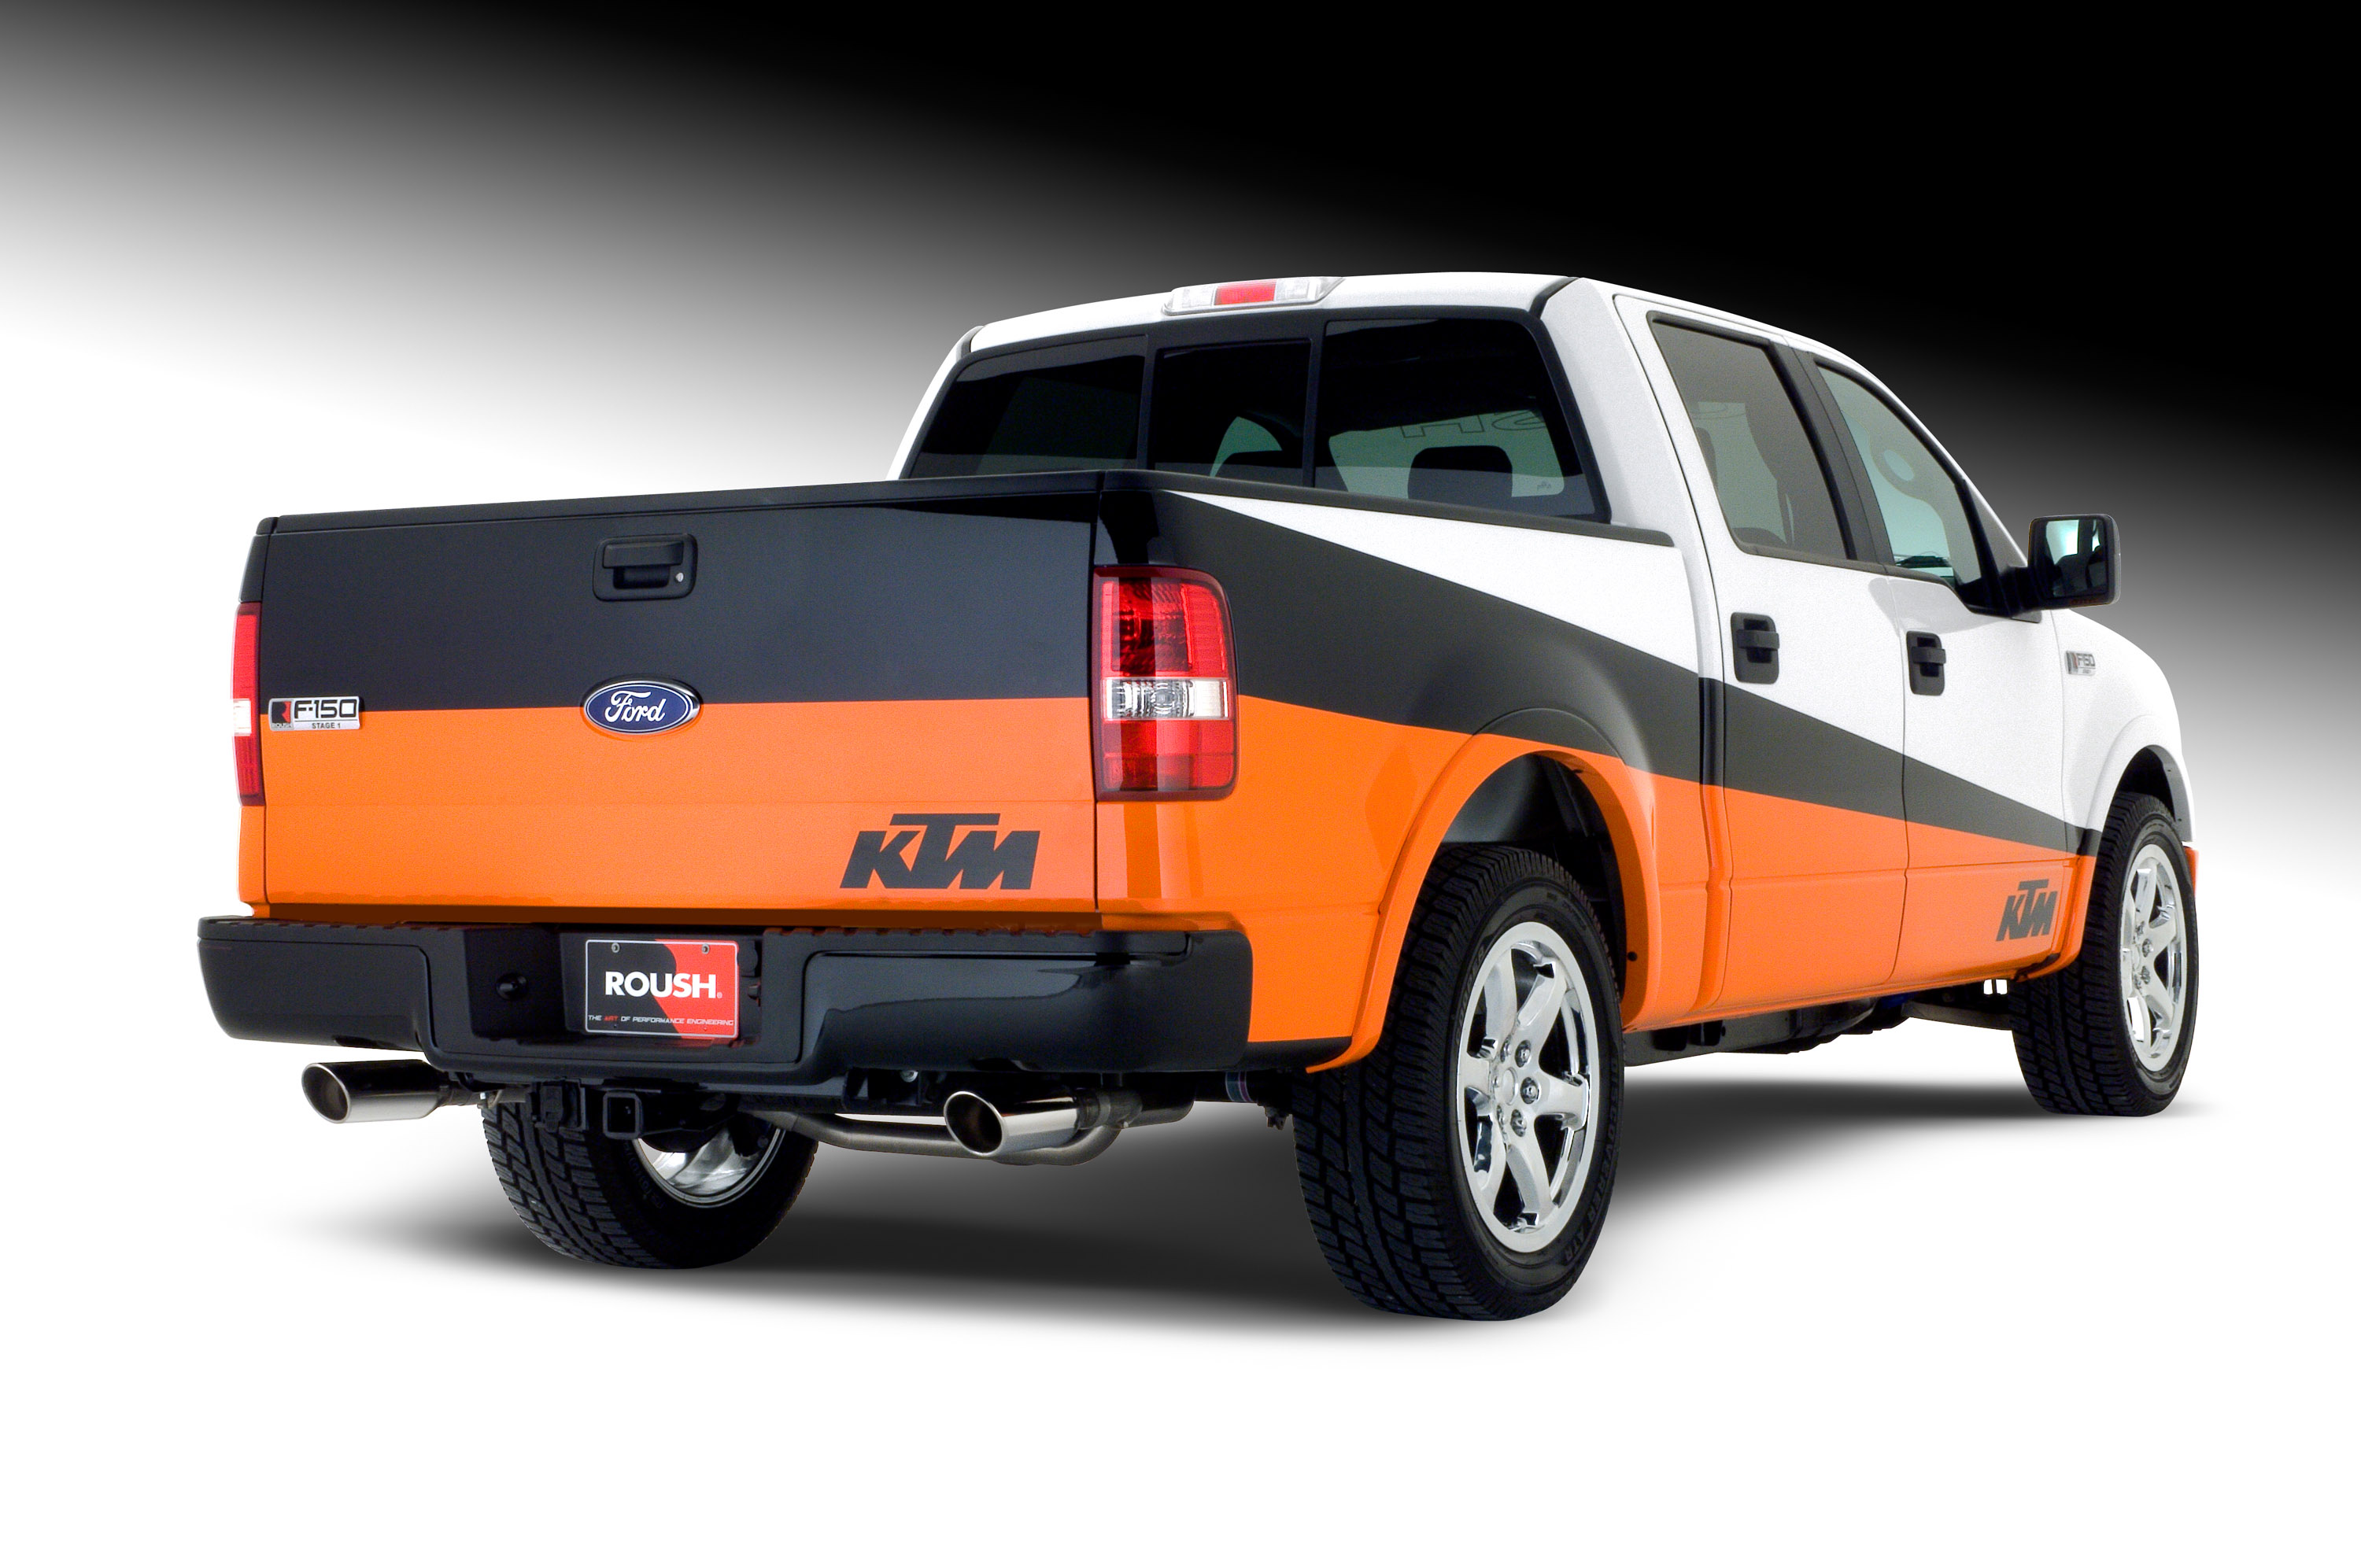 ktm edition roush ford f 150 picture 16370. Black Bedroom Furniture Sets. Home Design Ideas